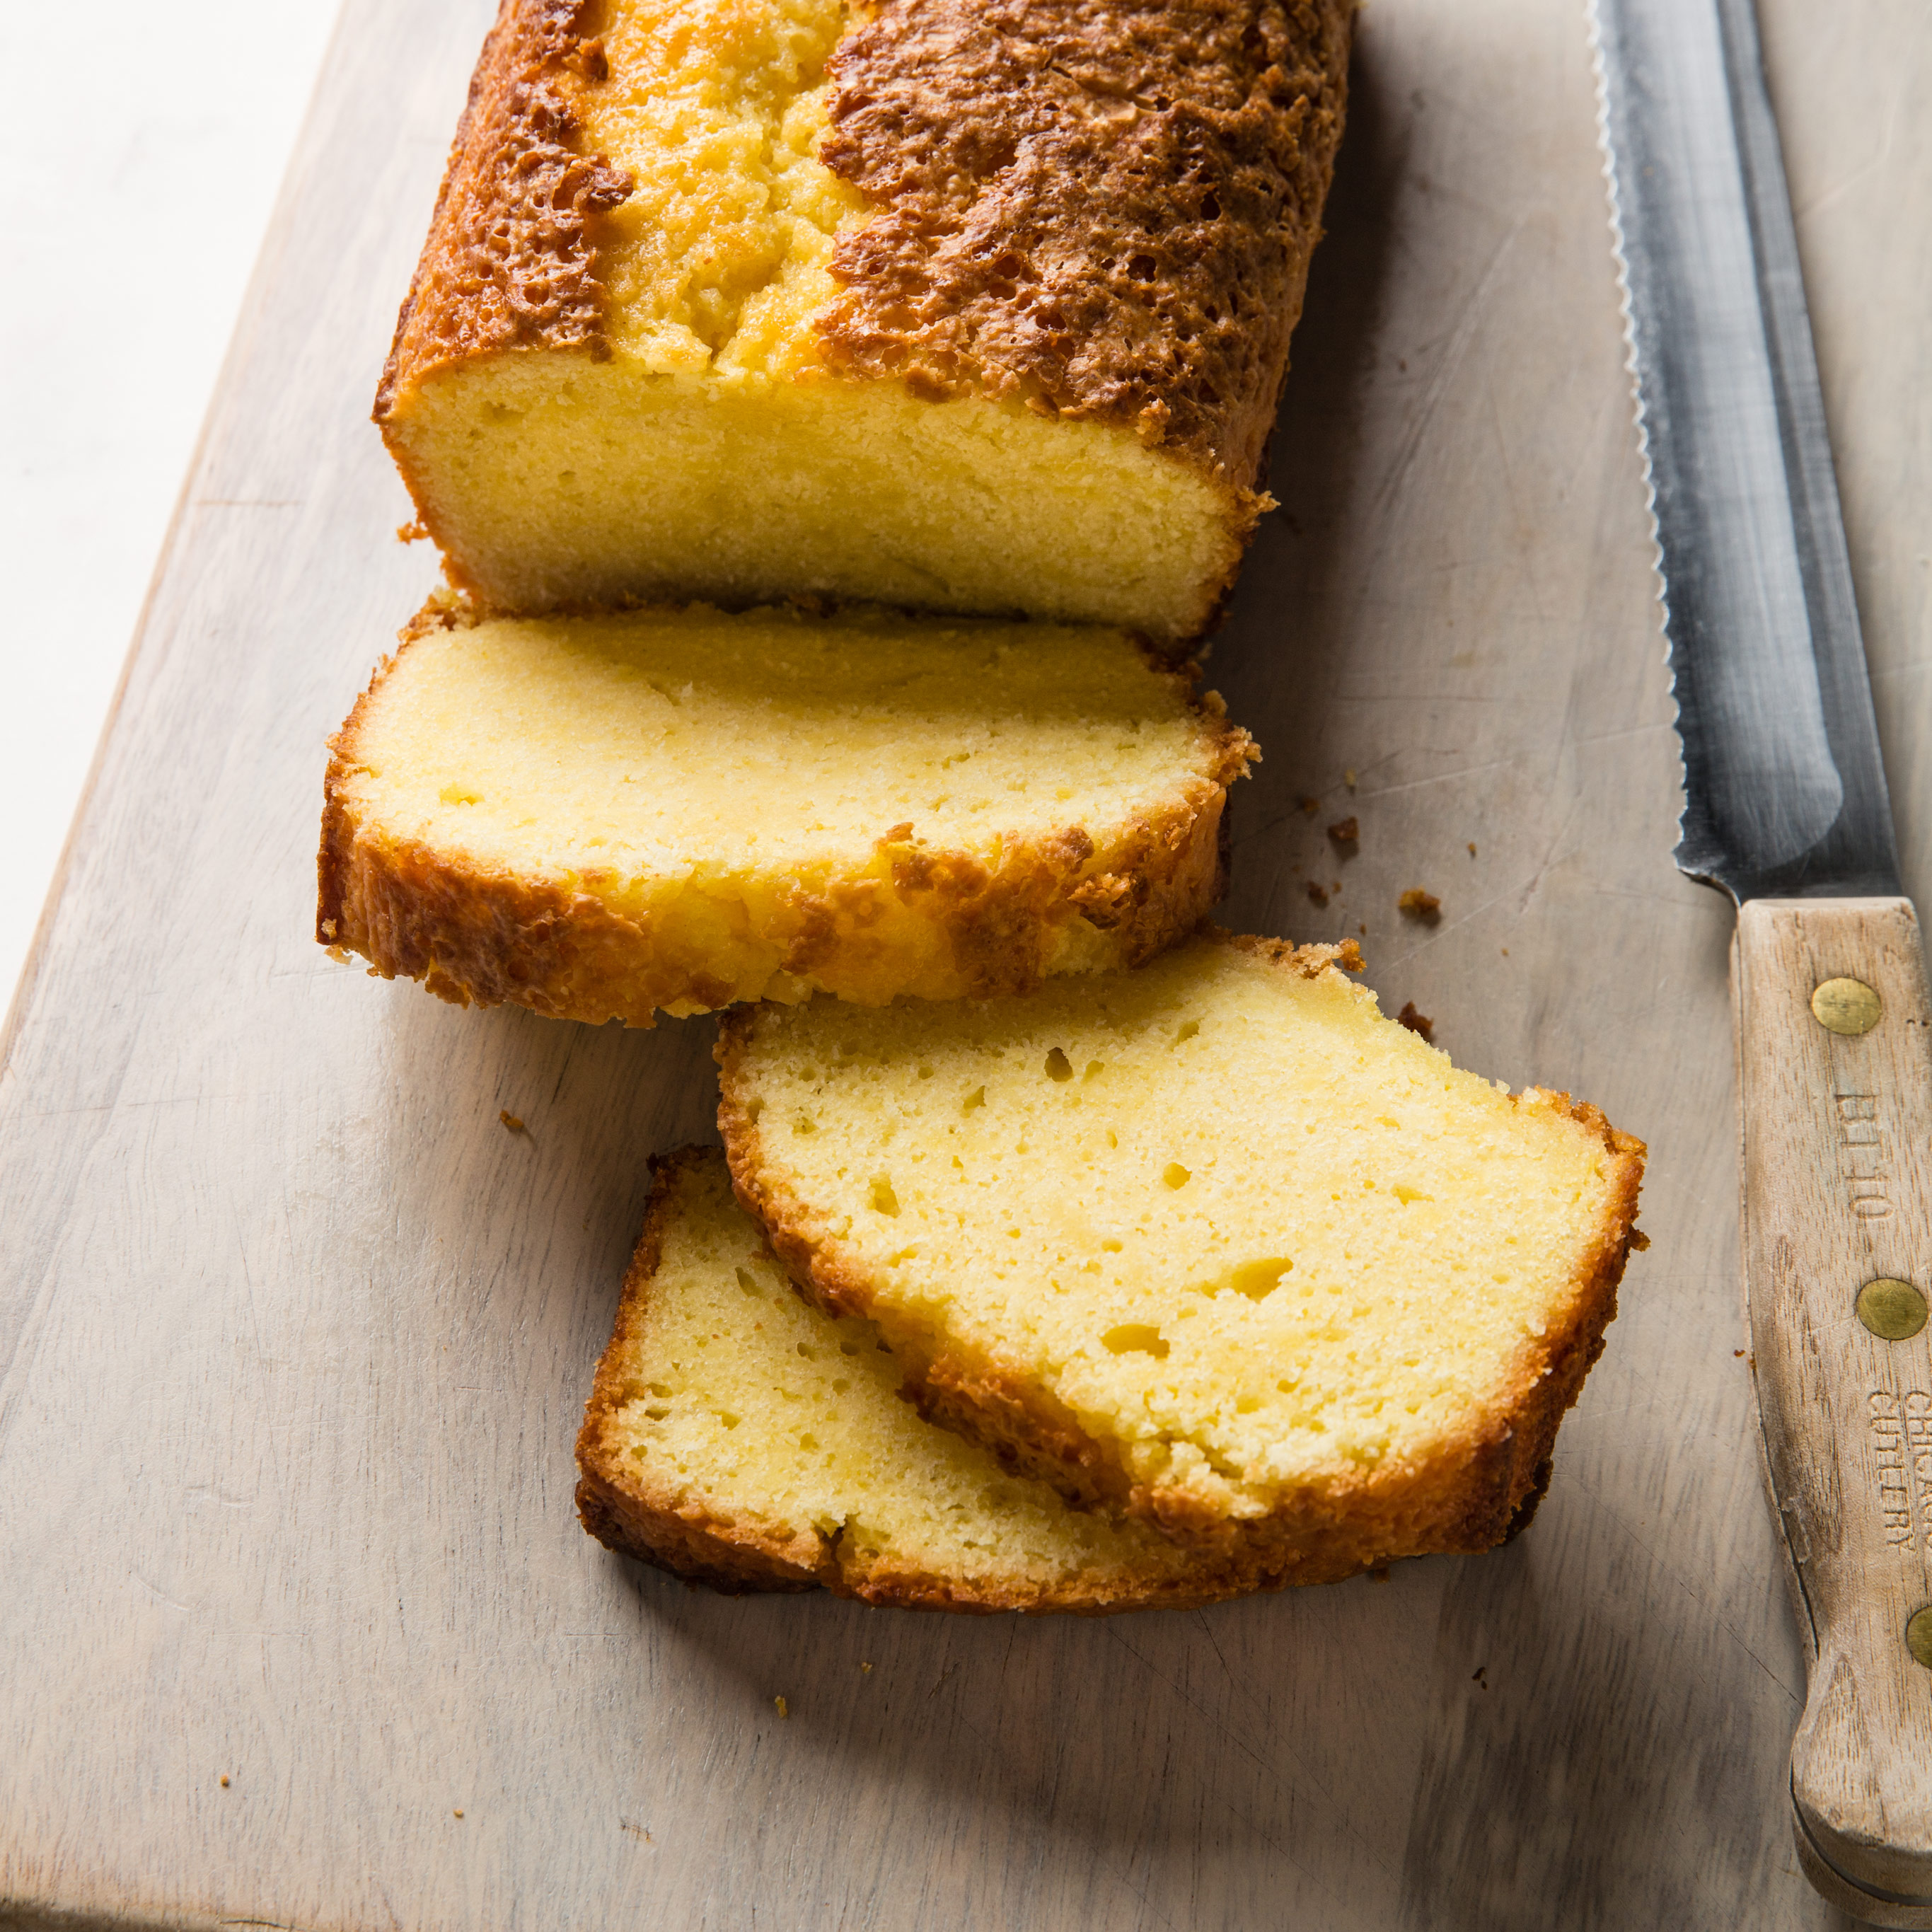 SFS_Easy_Pound_Cake_Lemon-2.jpg